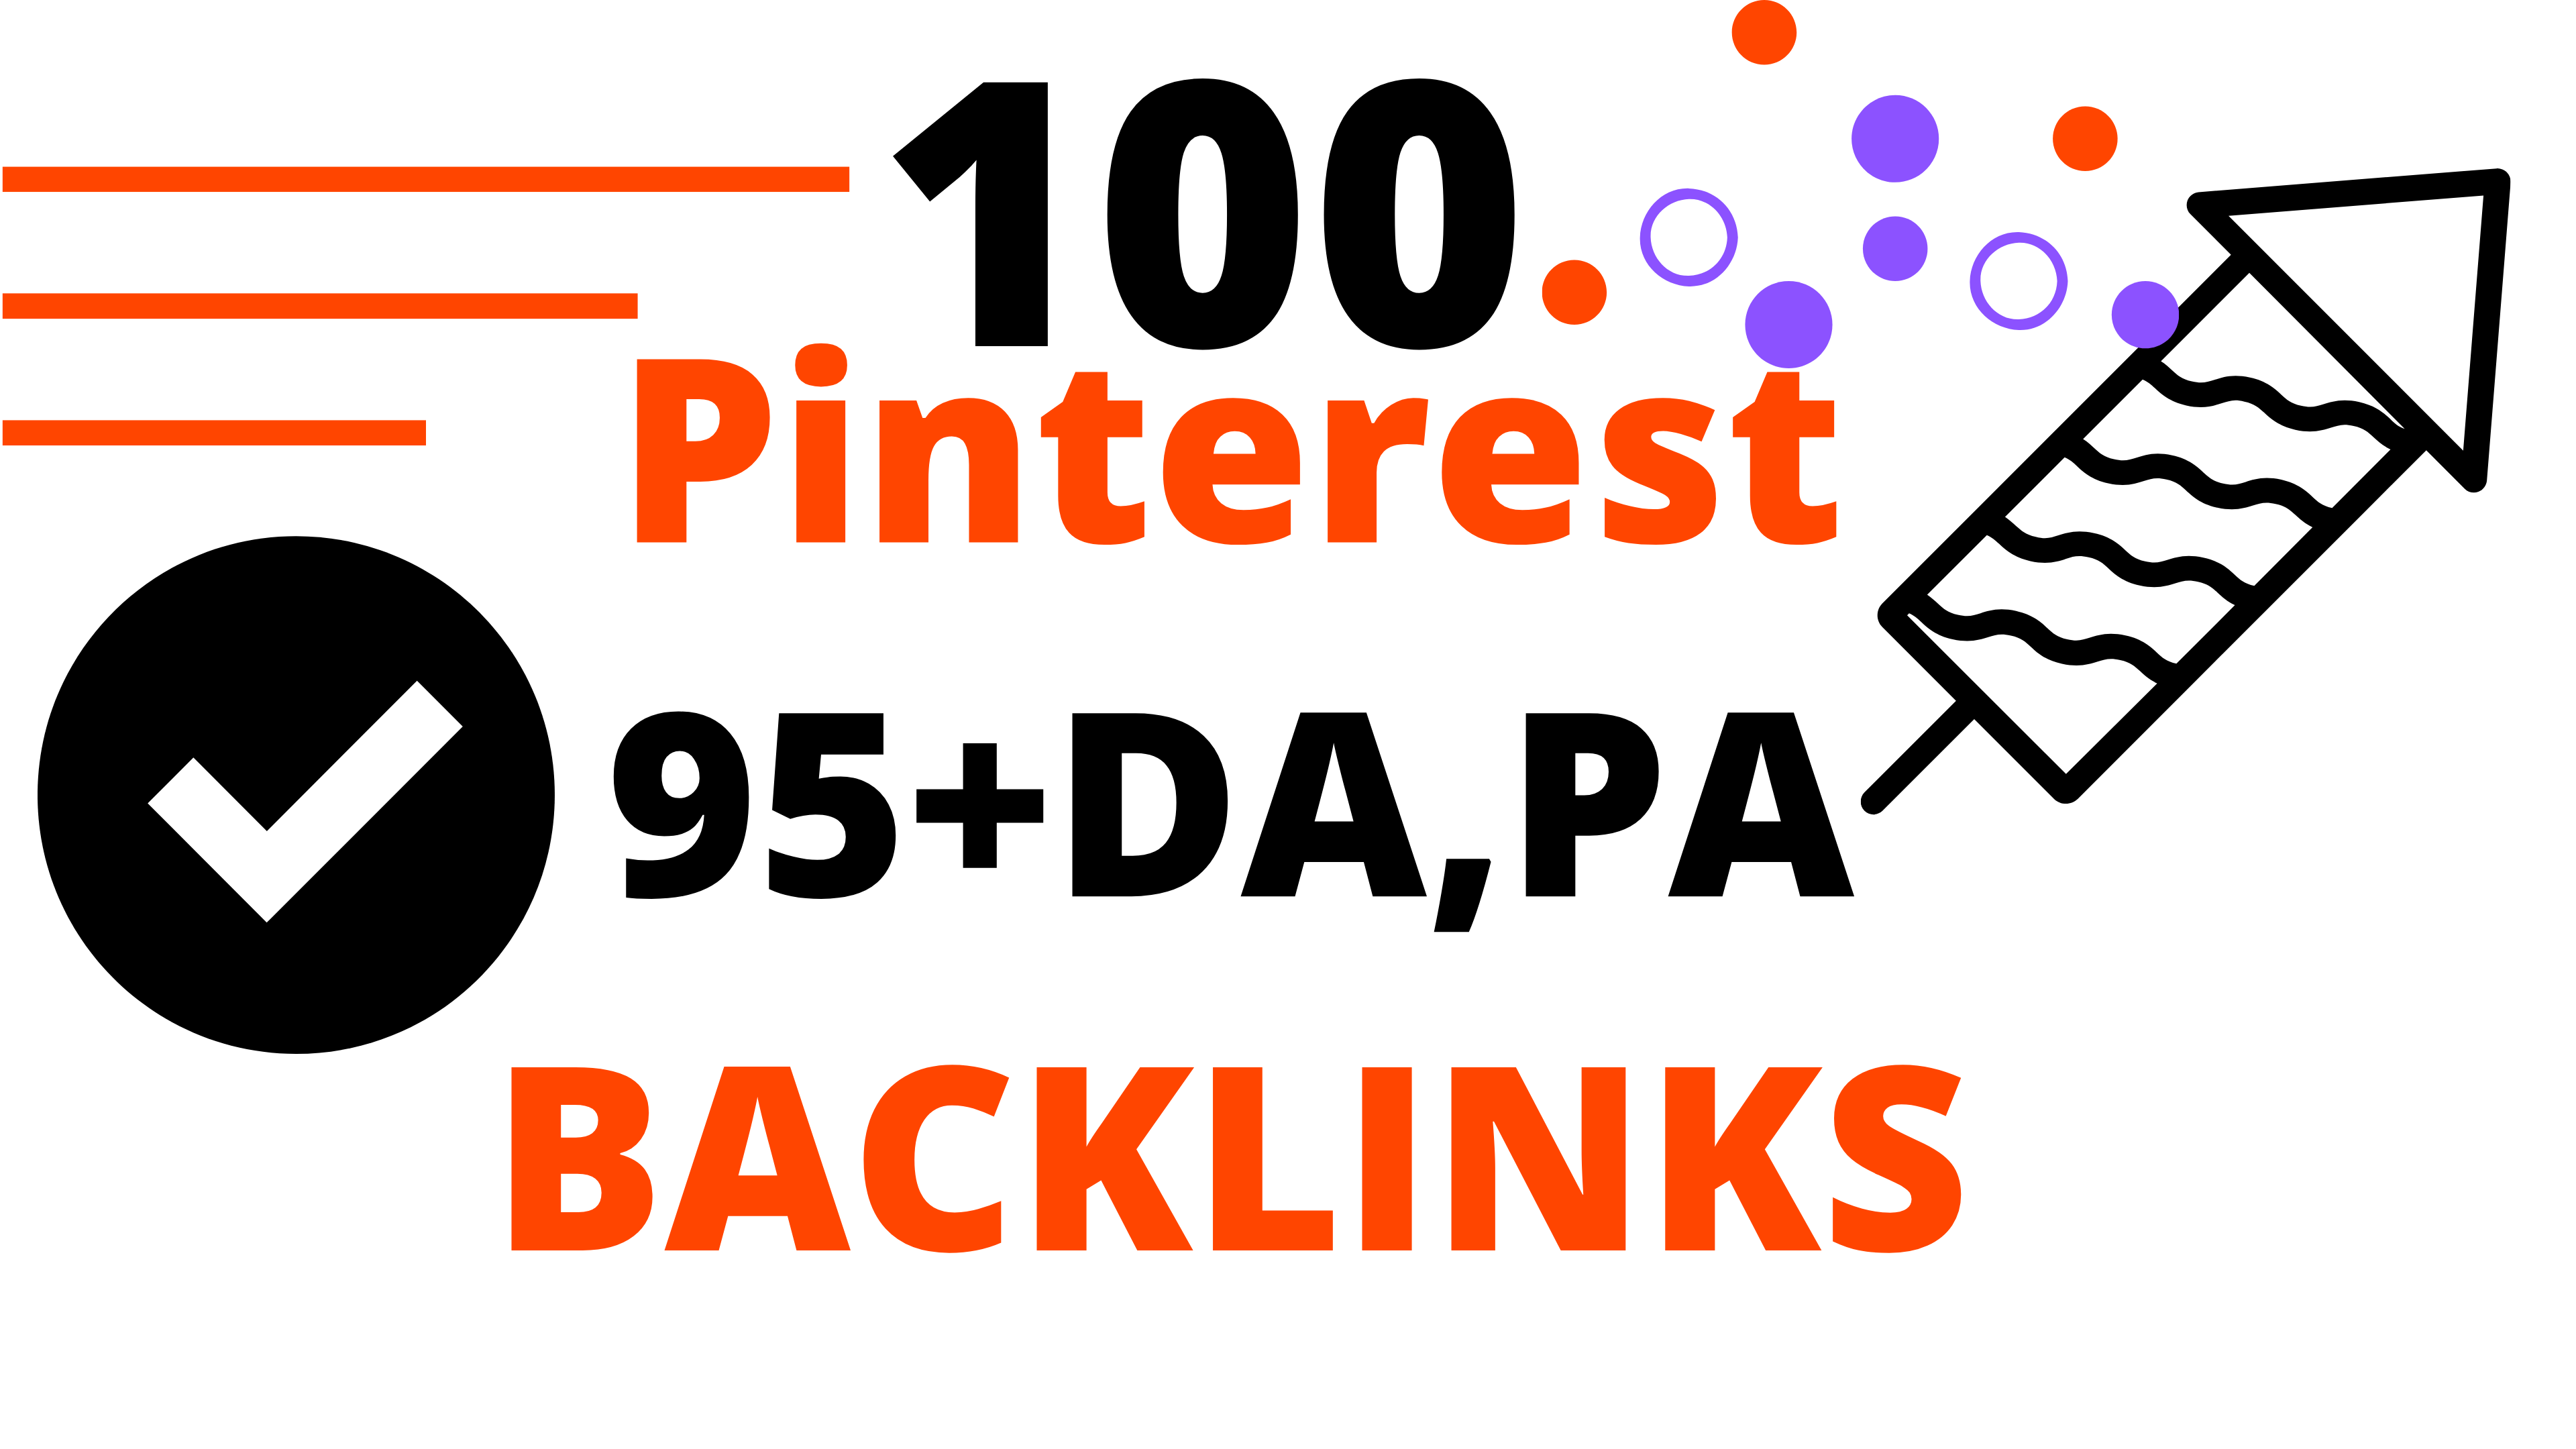 Powerful Pinterest 100 Backlinks 95+ DA,  PA High Quality Backlinks